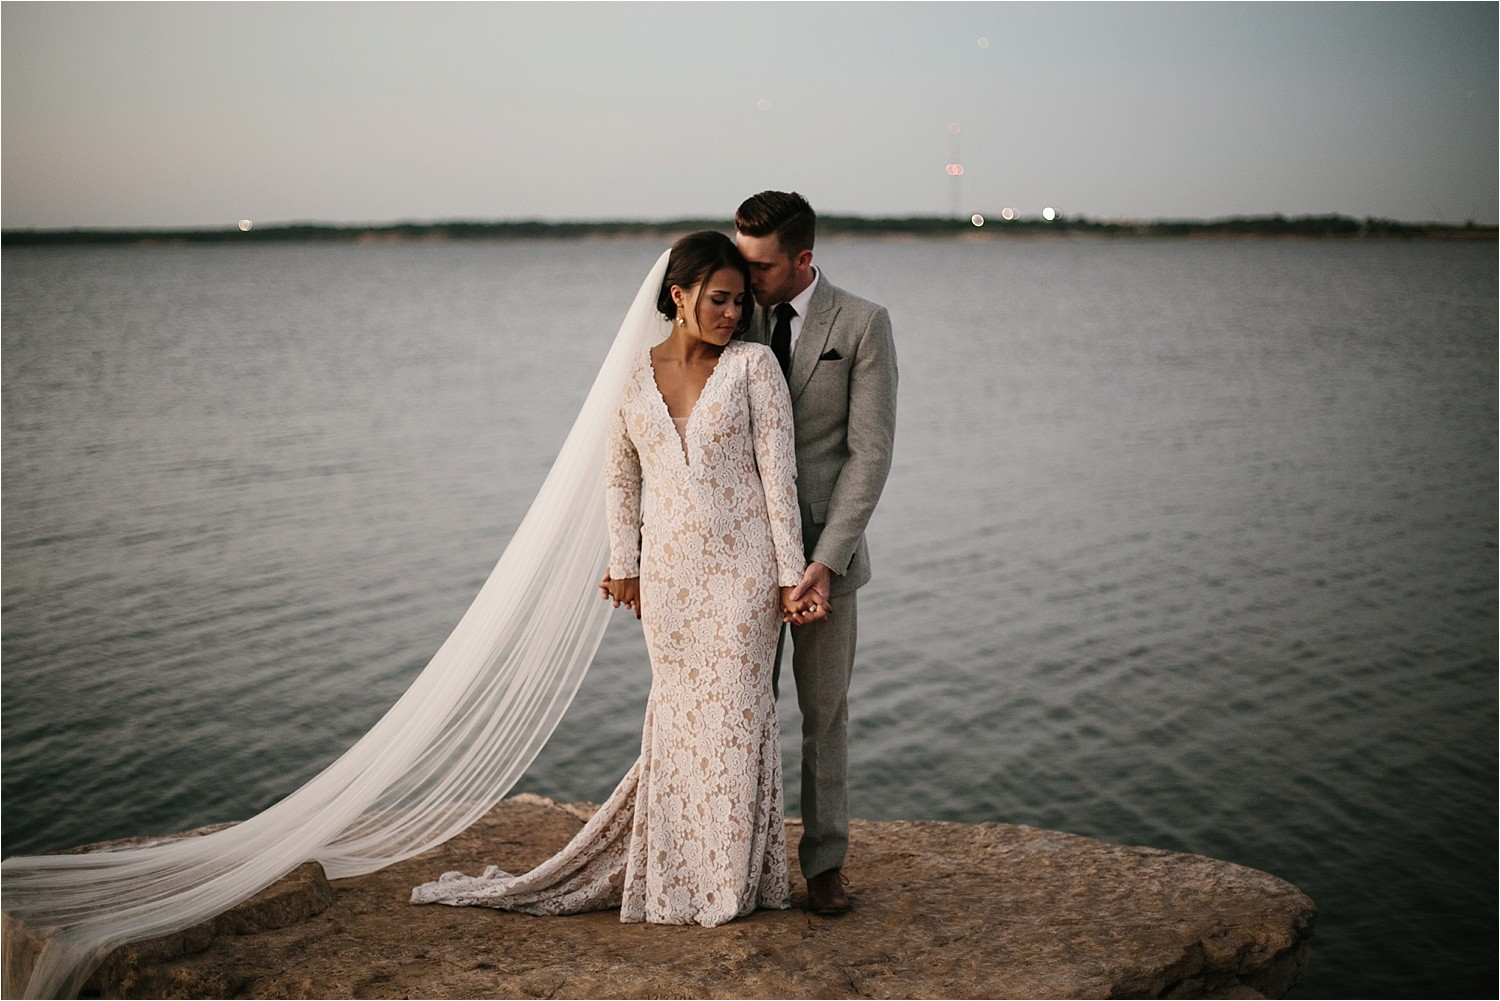 mallory-tyler-__-an-intimate-after-session-at-grapevine-lake-by-north-texas-wedding-photographer-rachel-meagan-photography-_-55